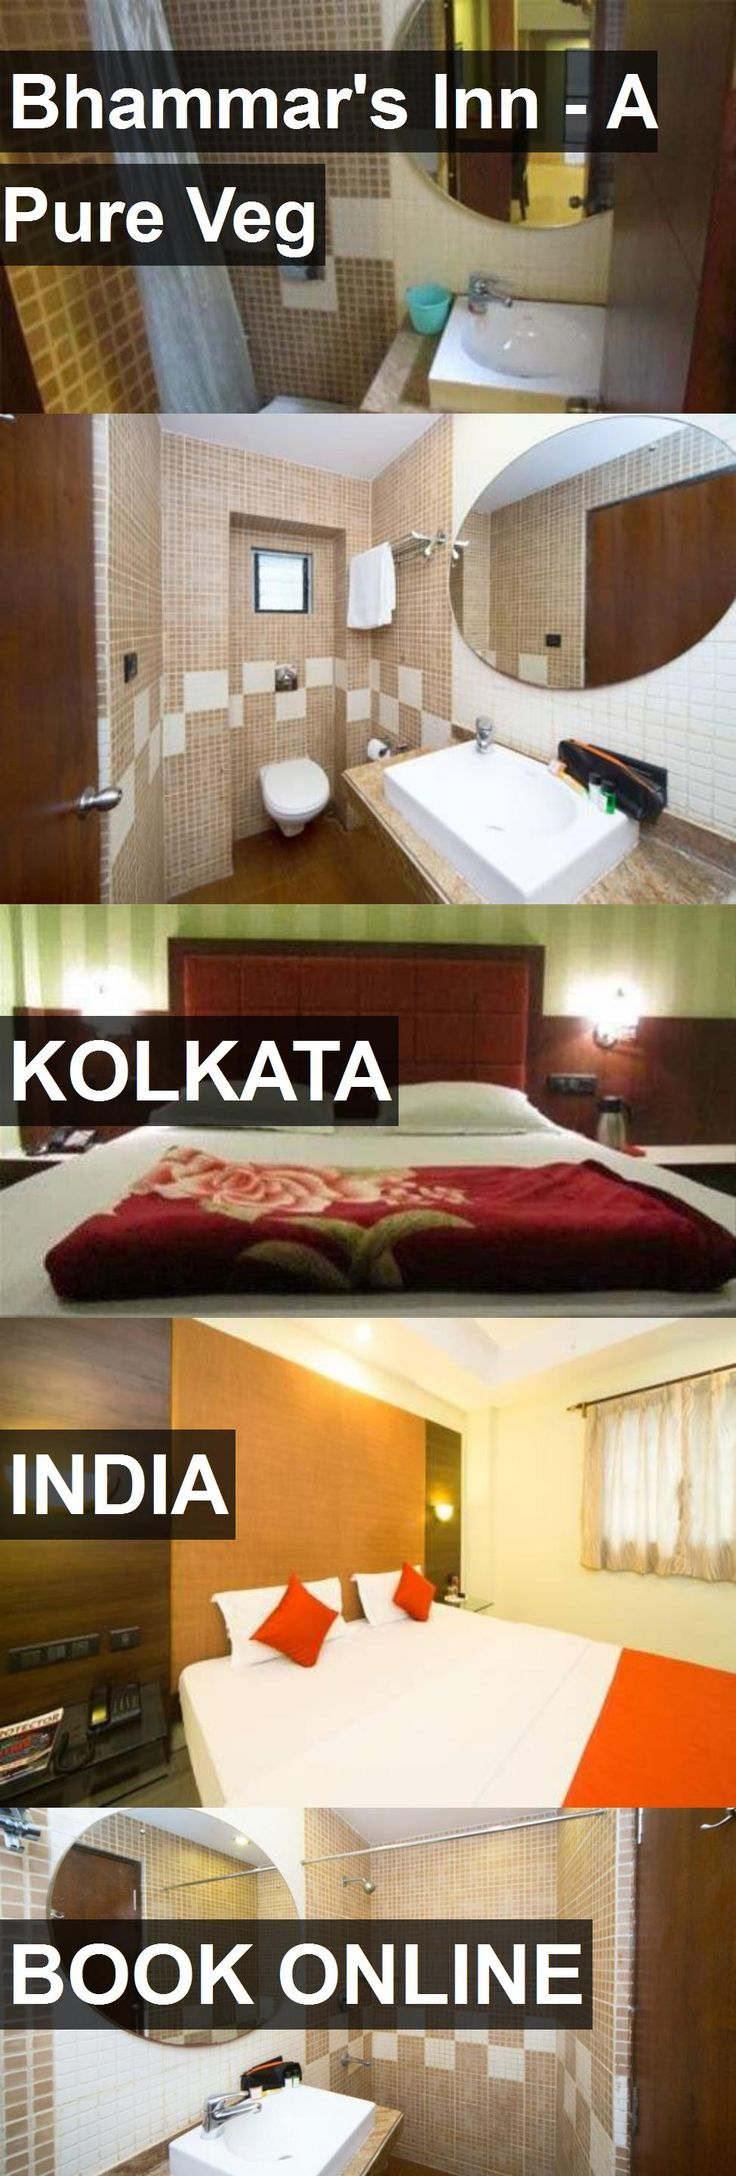 Hotel Bhammar's Inn - A Pure Veg in Kolkata, India. For more information, photos, reviews and best prices please follow the link. #India #Kolkata #travel #vacation #hotel